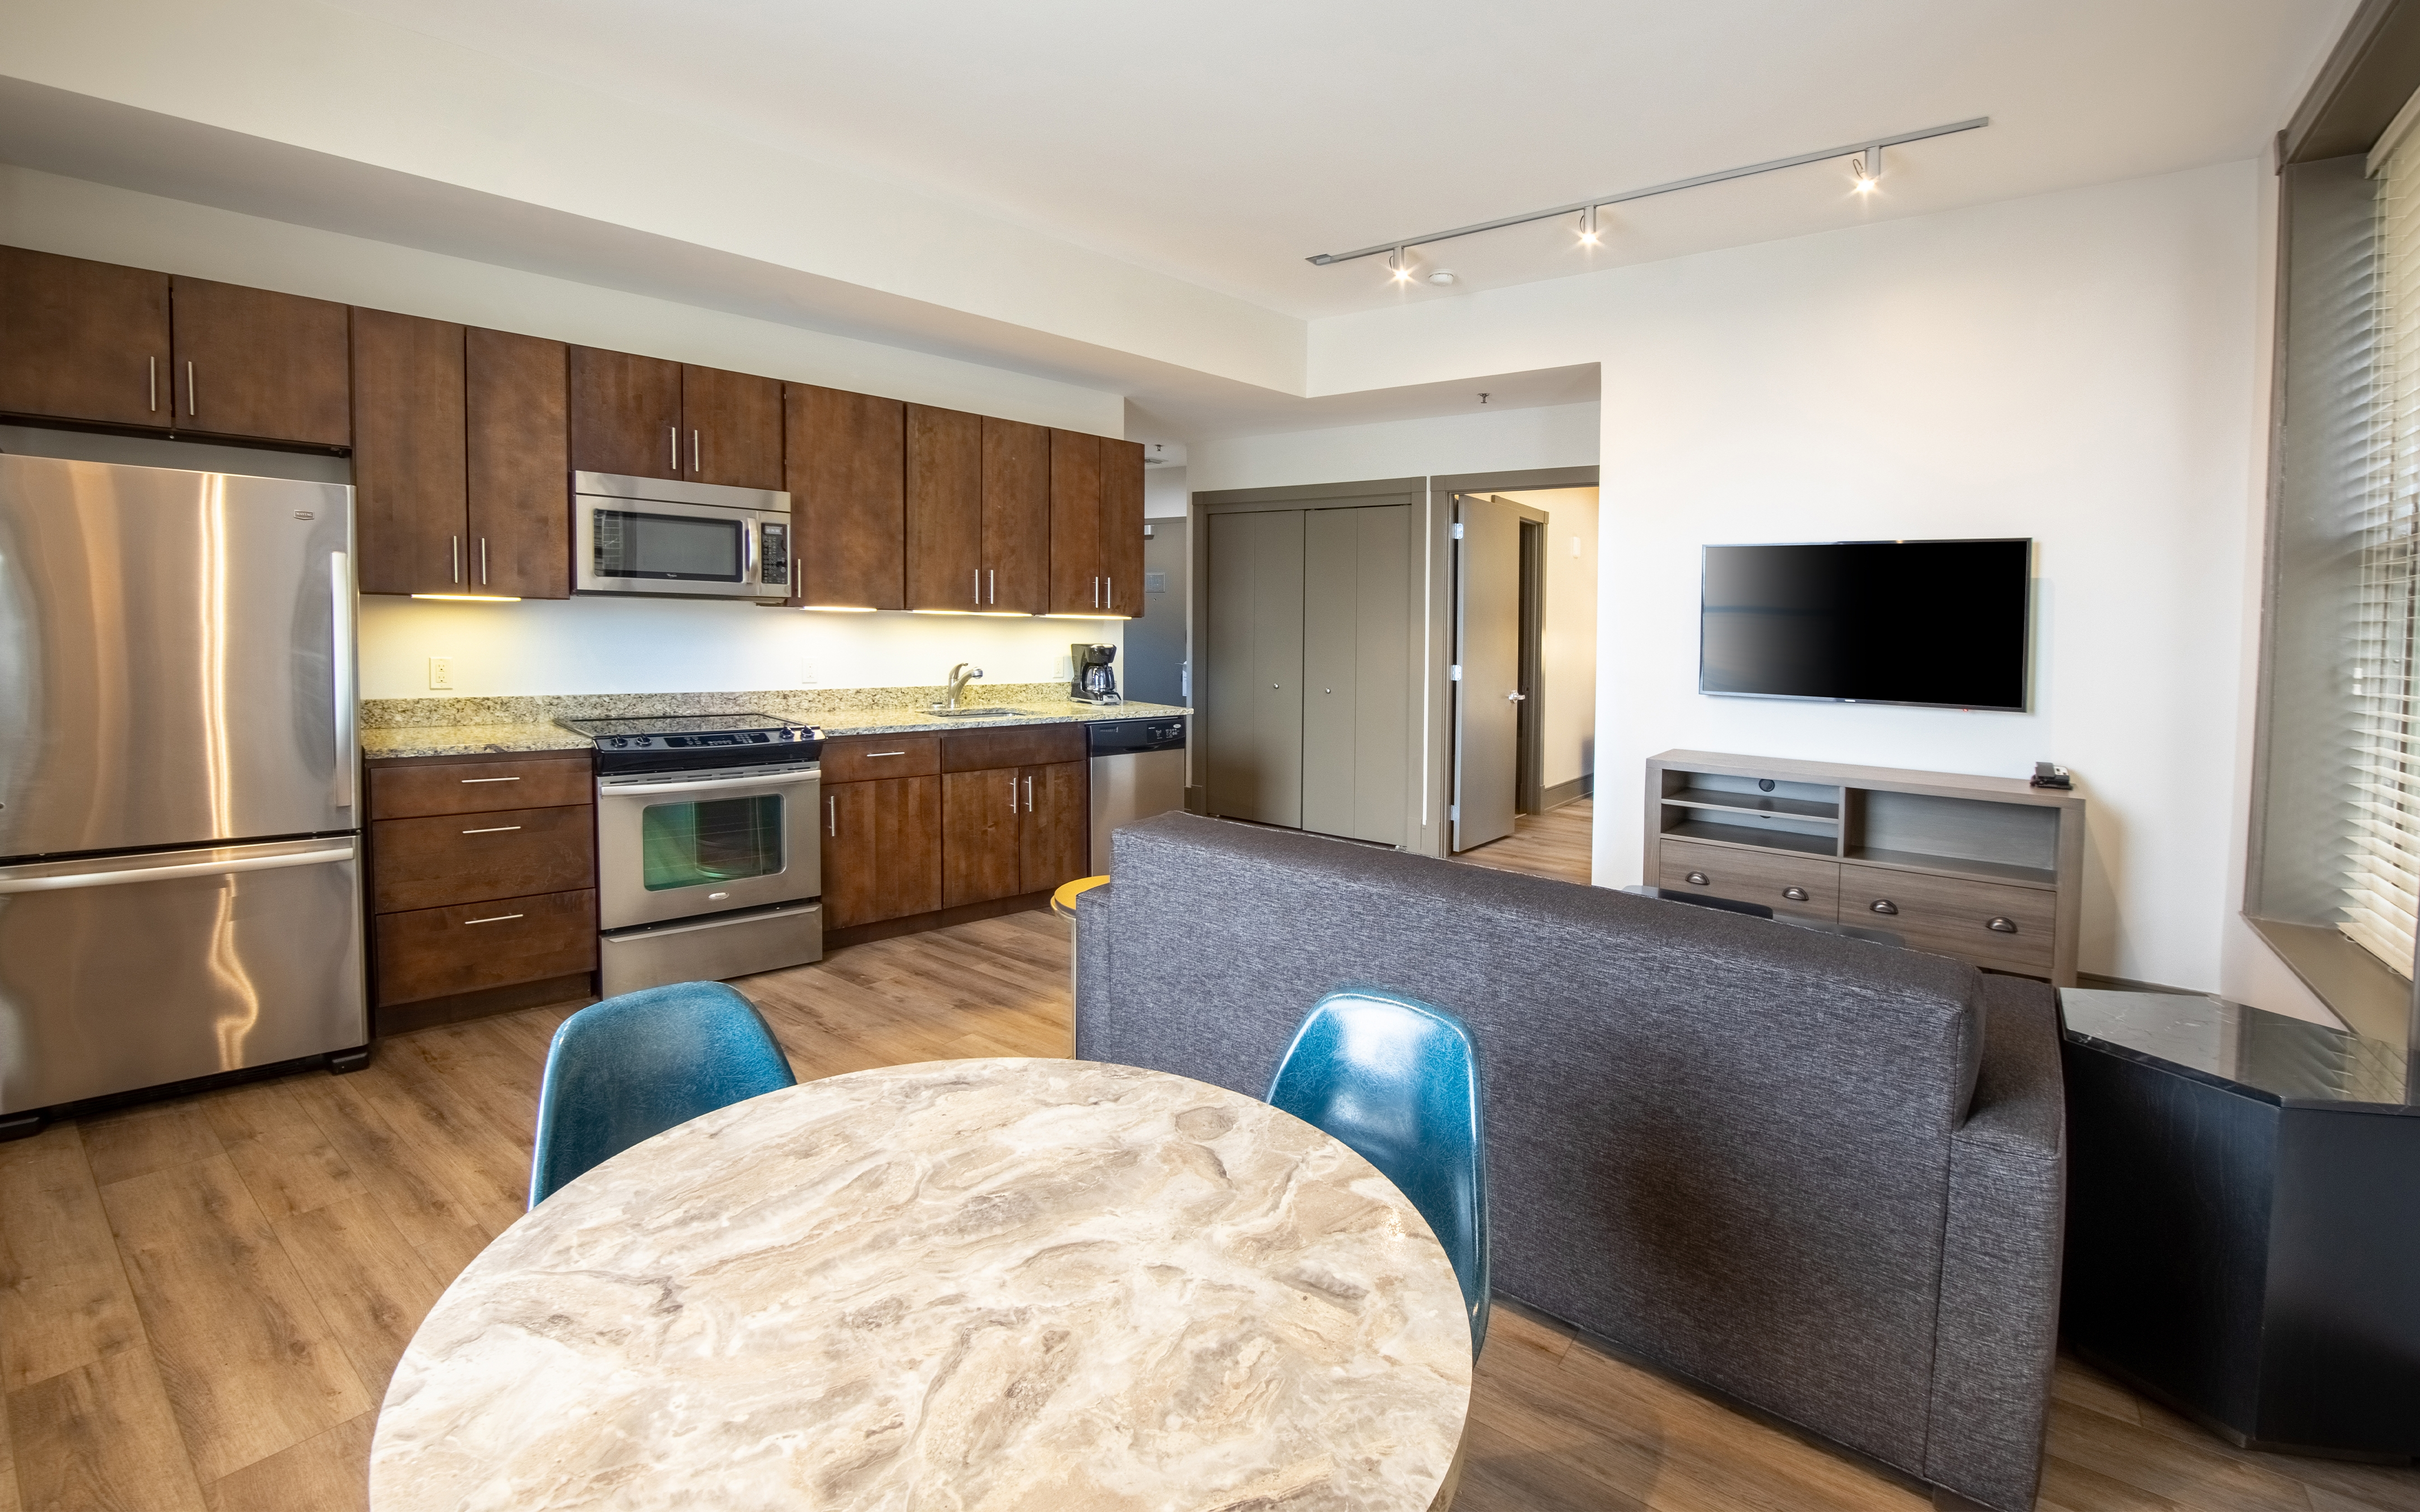 One Bedroom Deluxe At New Orleans Resort New Orleans Louisiana Holidayinnclub Com